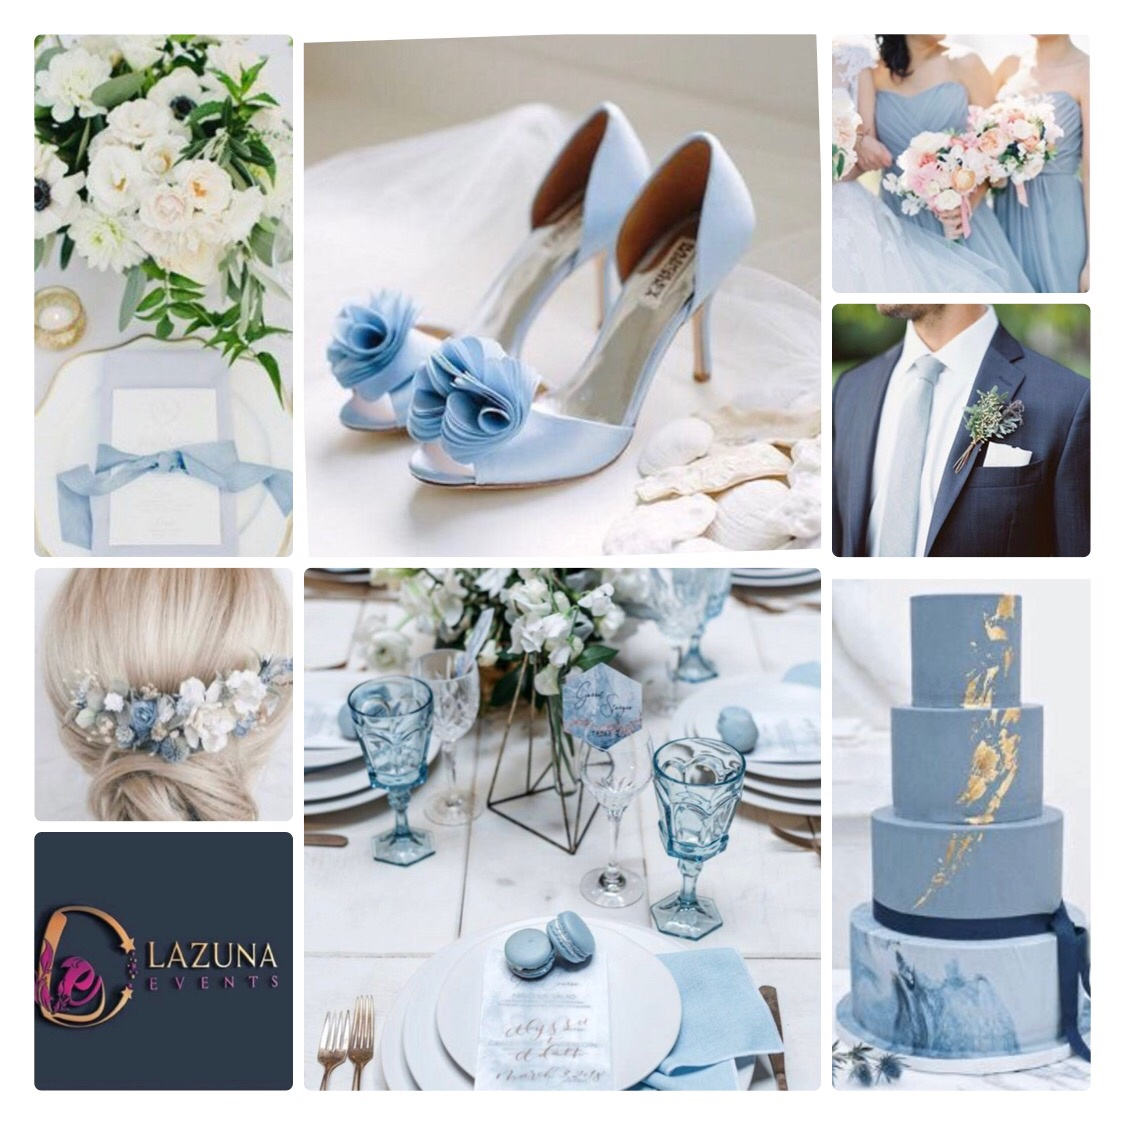 Dusty Blue colour theme is so fresh. Its also great for your something blue wedding tradition.   #lazunaevents #wedding #weddings #weddingplanning #weddingplanner  #weddingdetails #bride #weddingidea  #weddinginspo #weddingtrends #weddinginspiration #weddingideas #weddingstylepic.twitter.com/58KMPbXLPR